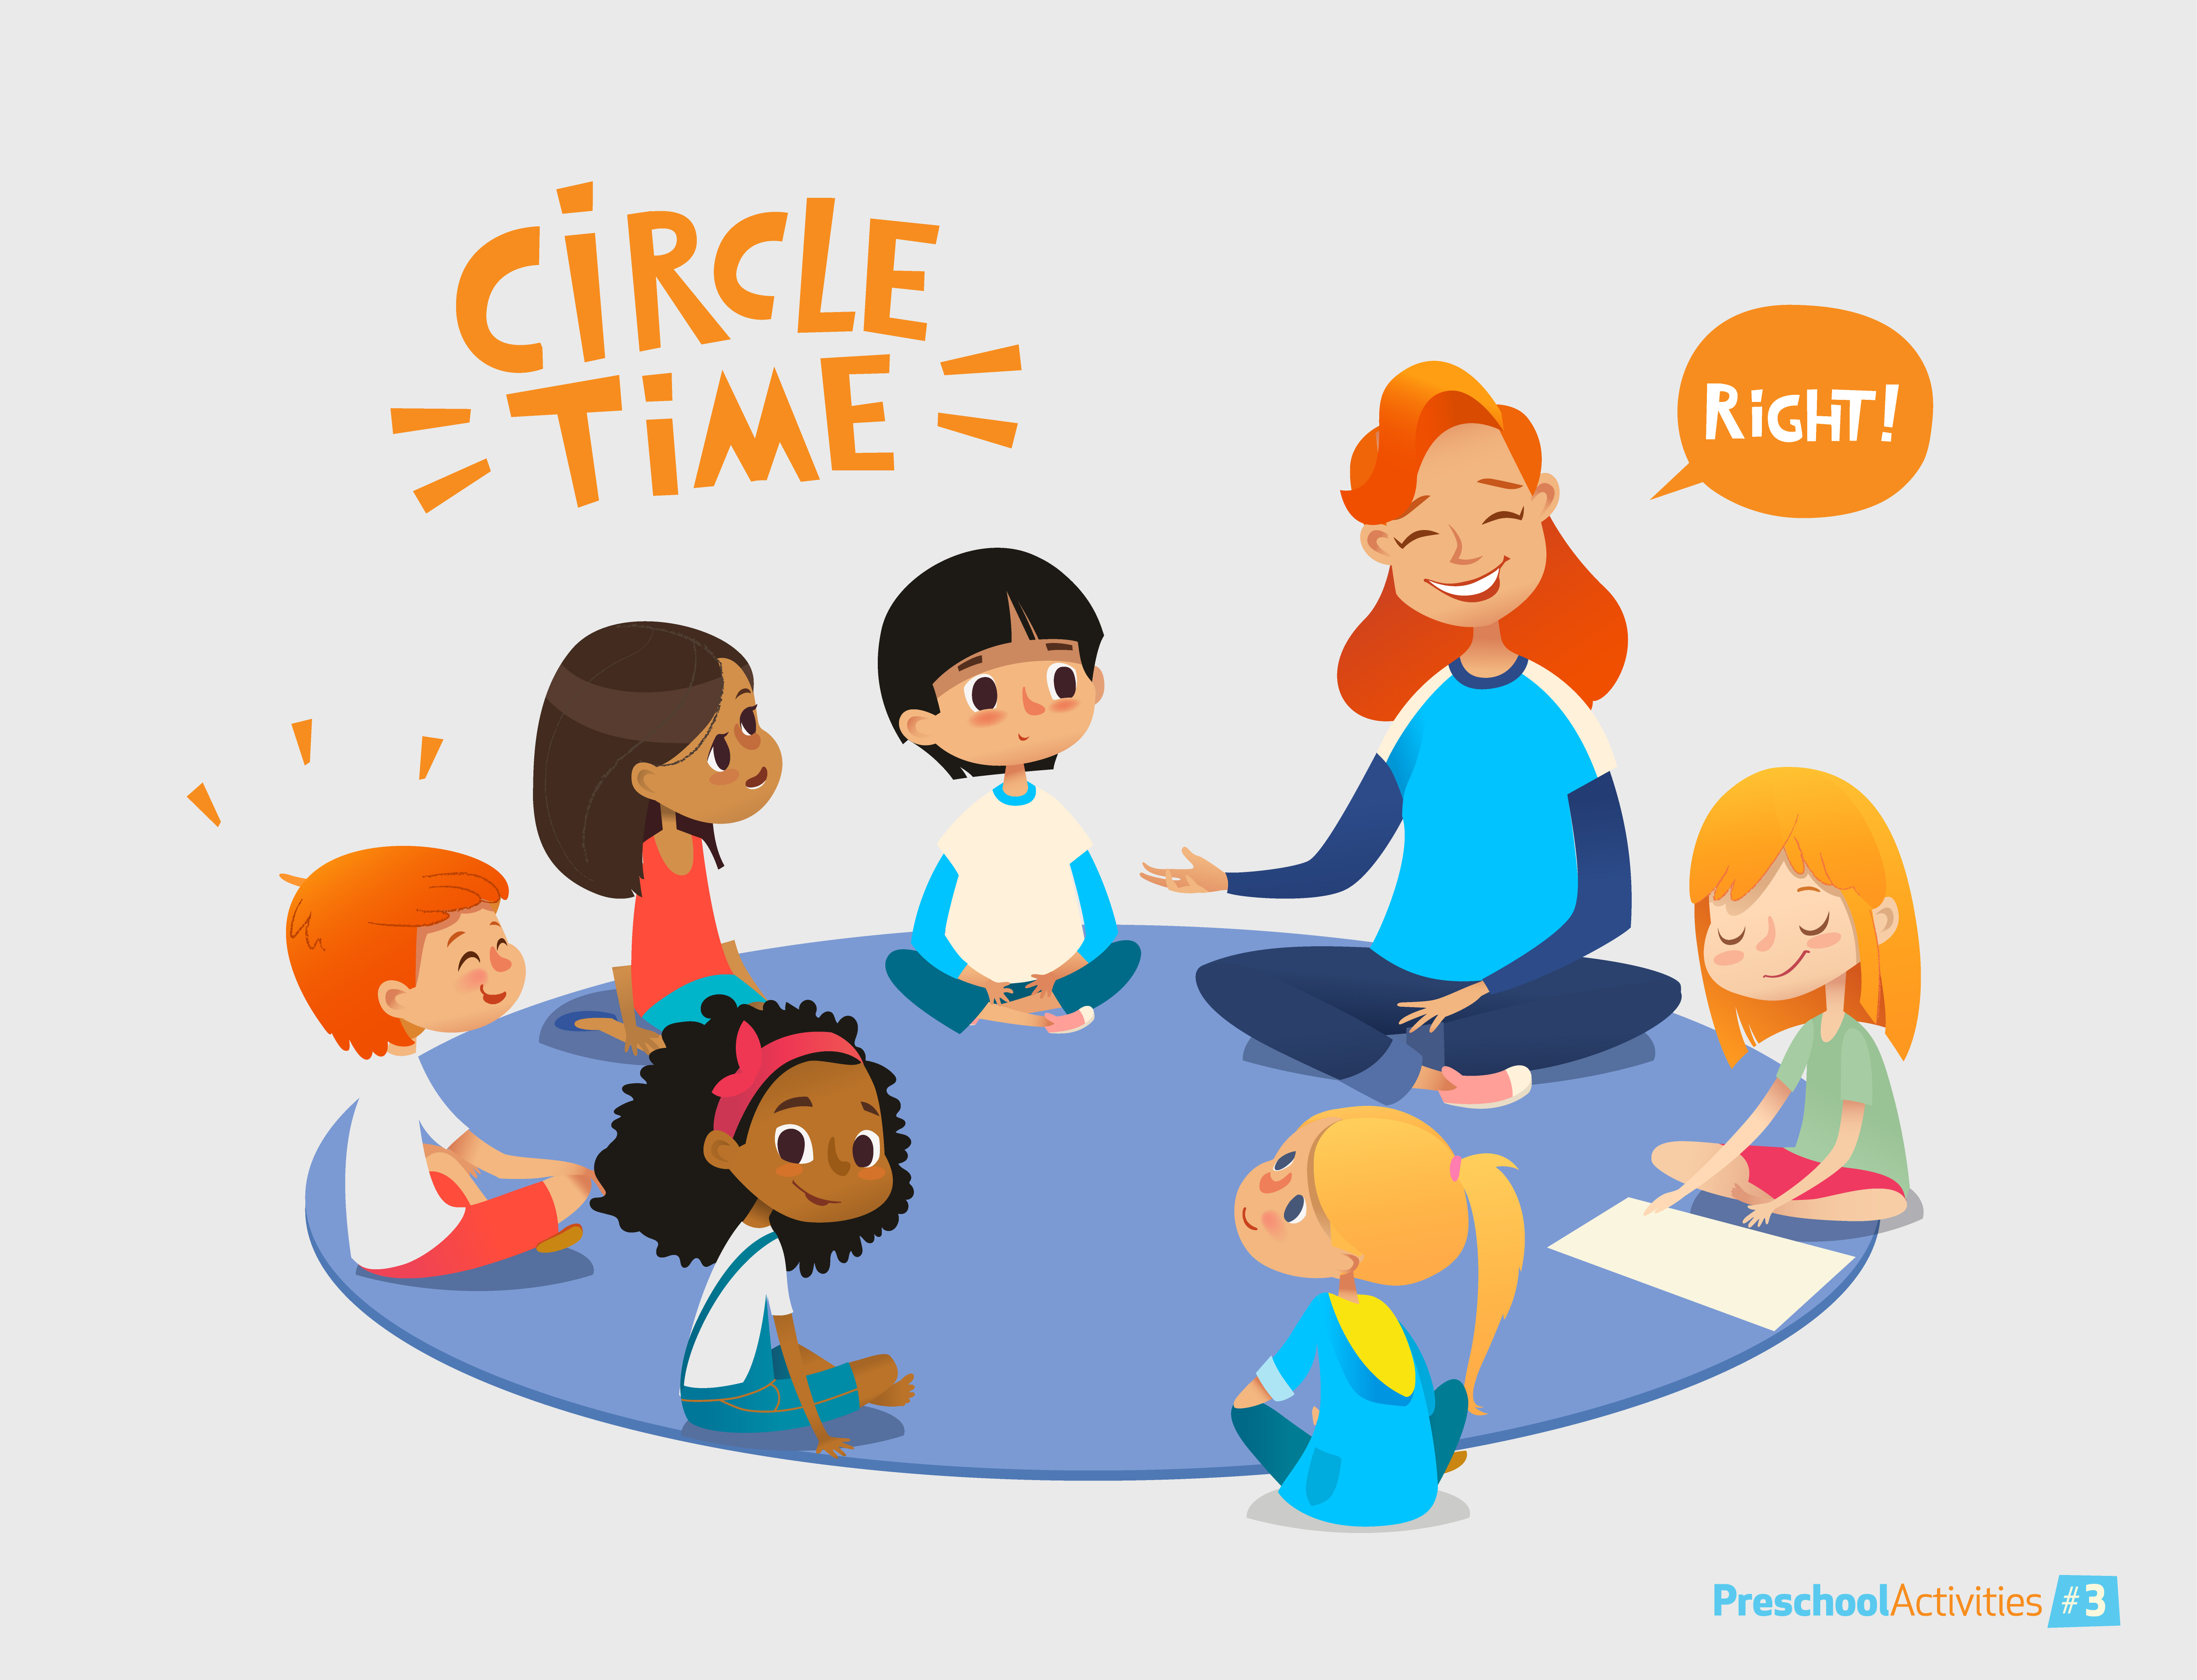 Communicating Effectively Through Circle Time For Young